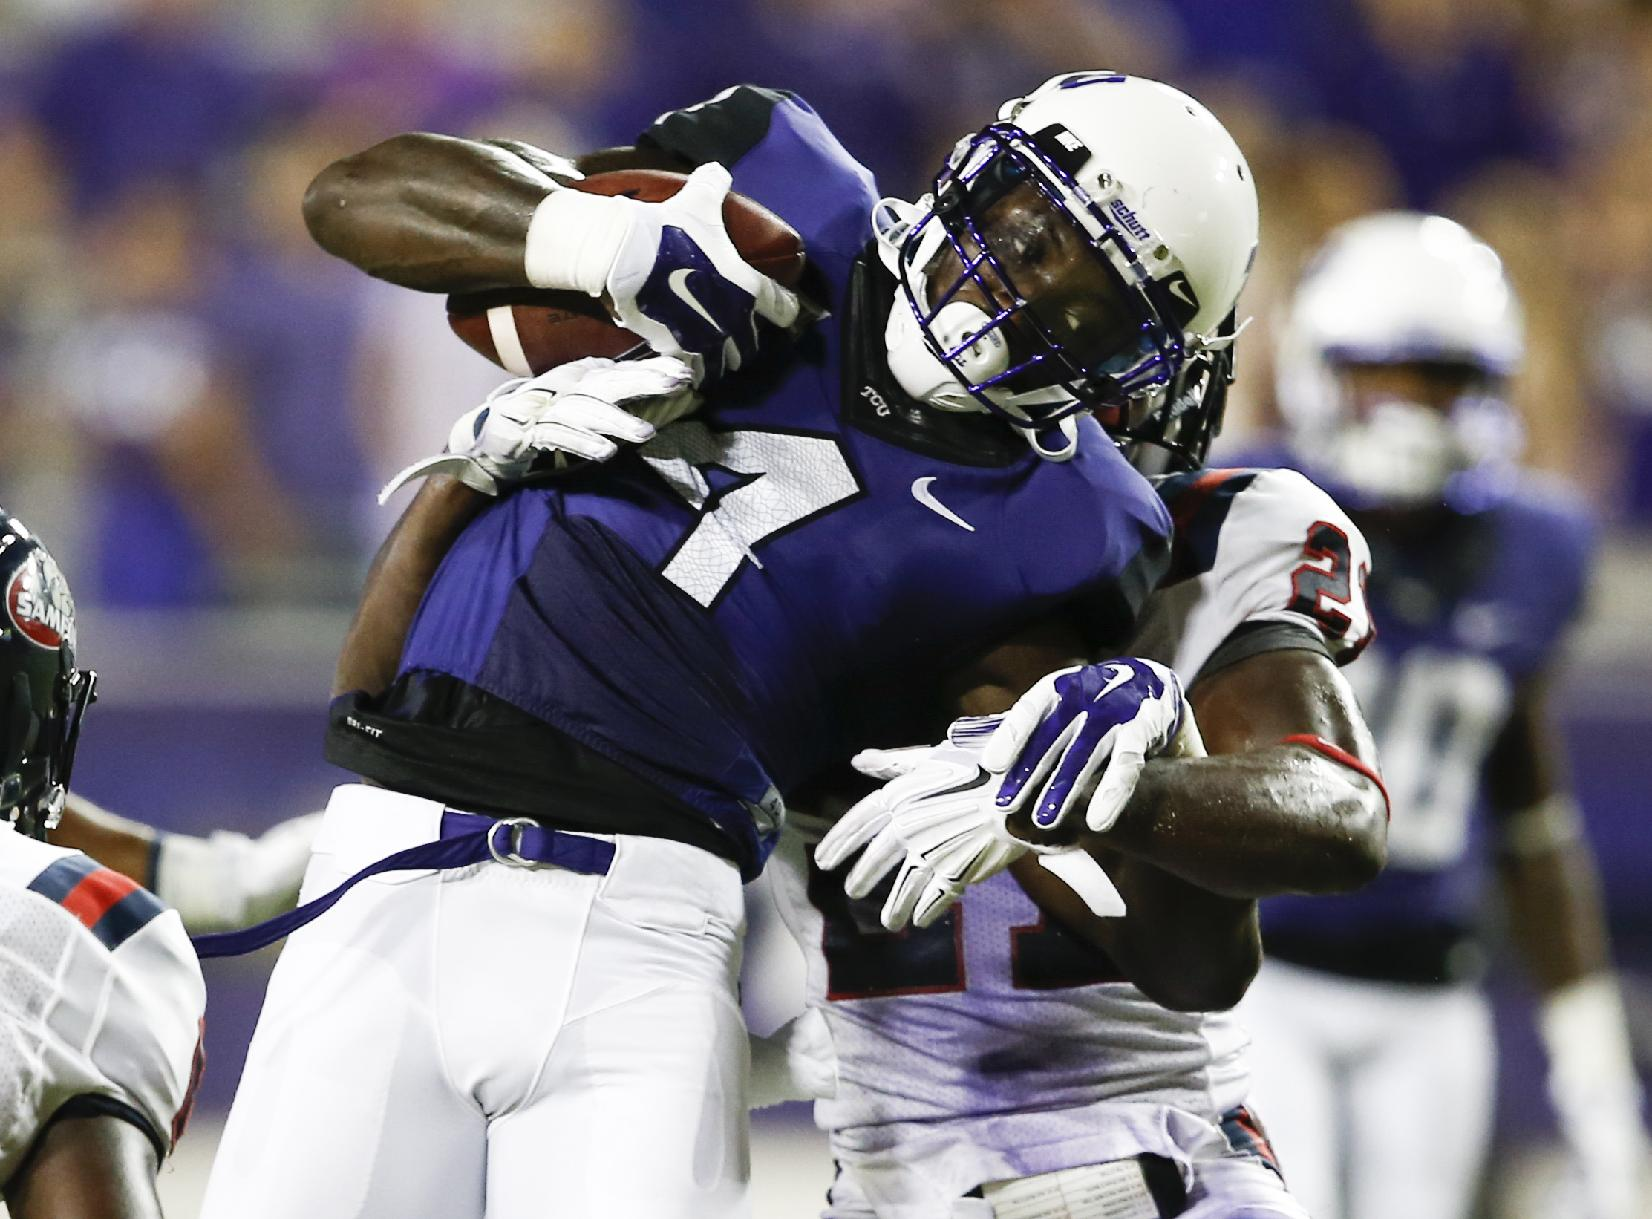 TCU wide receiver Jordan Moore (4) is tackled by Samford defensive back James Bradberry (21) after a catch in the second half of an NCAA college football game in Fort Worth, Texas, Saturday, Aug. 30, 2014. TCU won 48-14